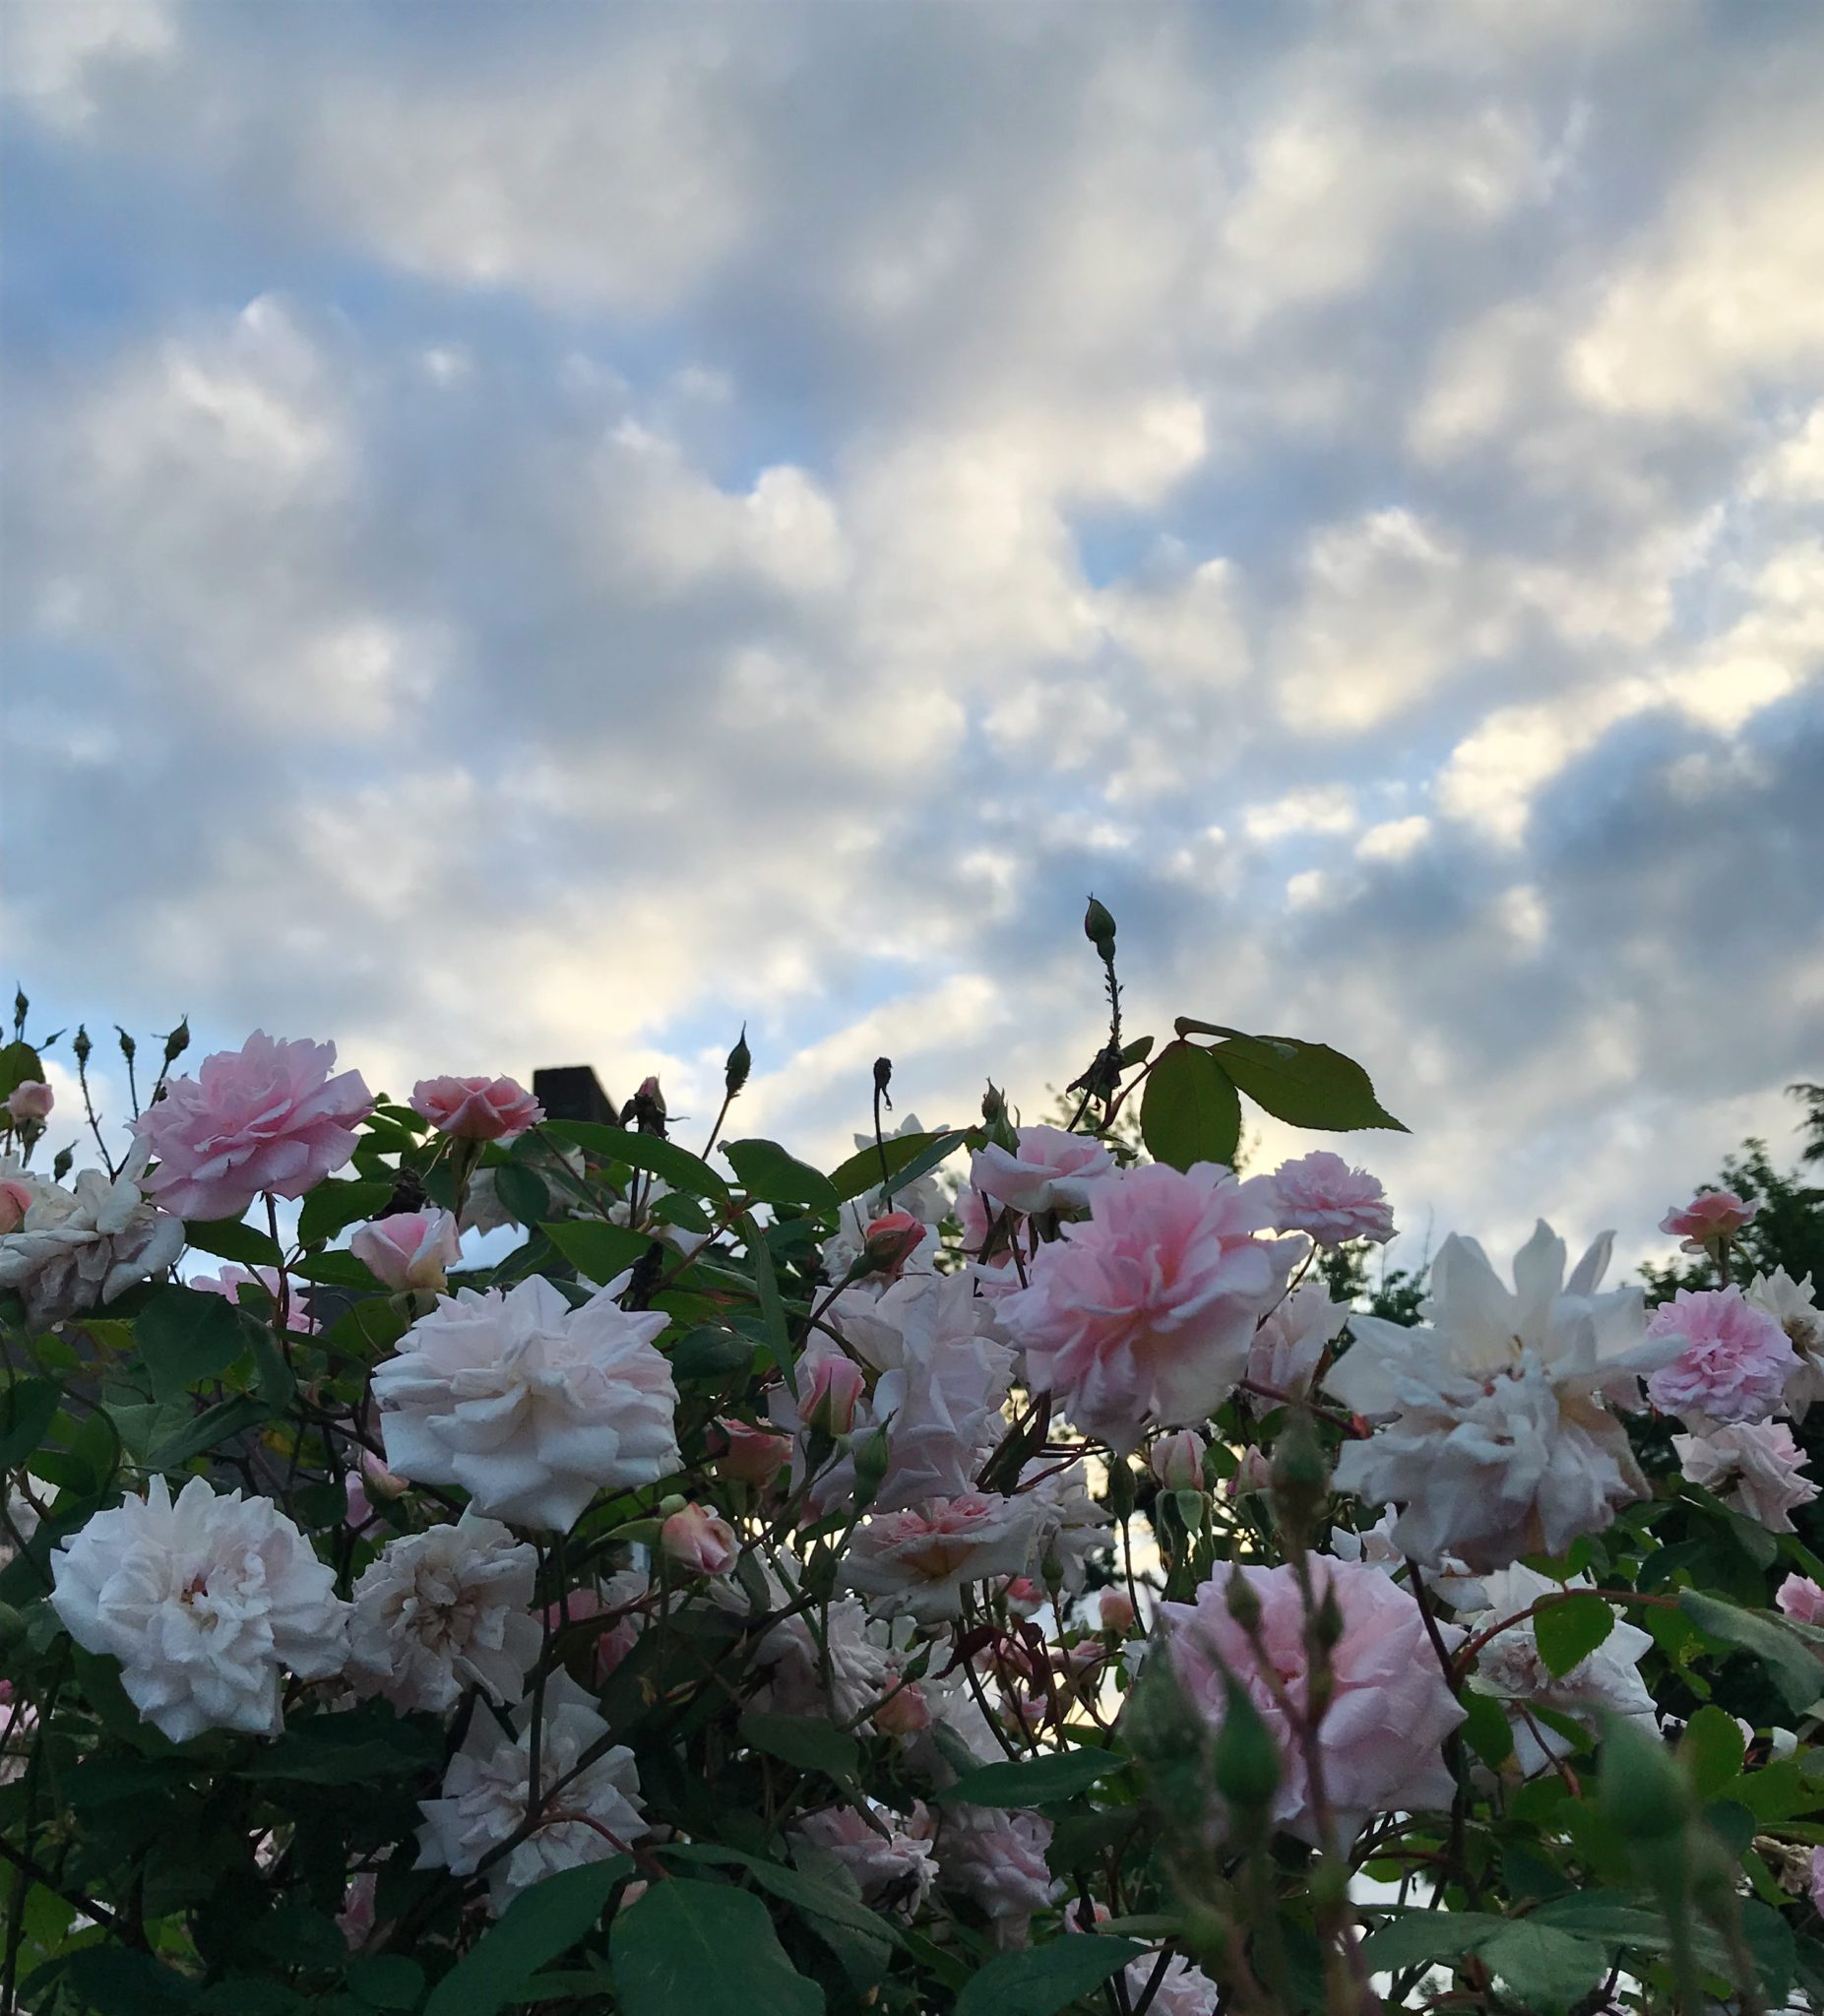 pink roses blooming under a blue sky